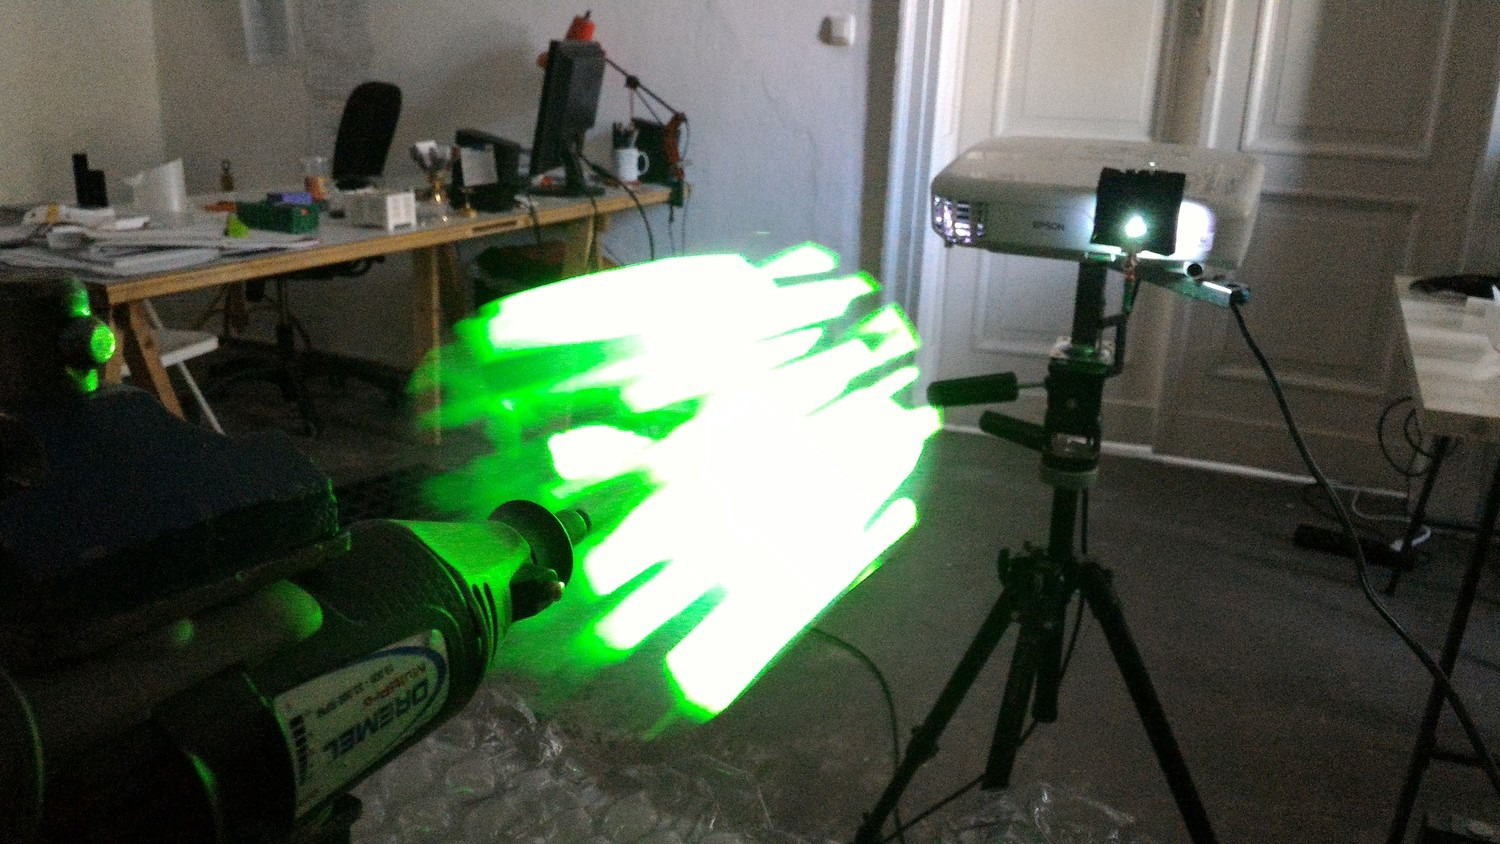 Open-Source Volumetric Display Pushes What is Possible With 3D